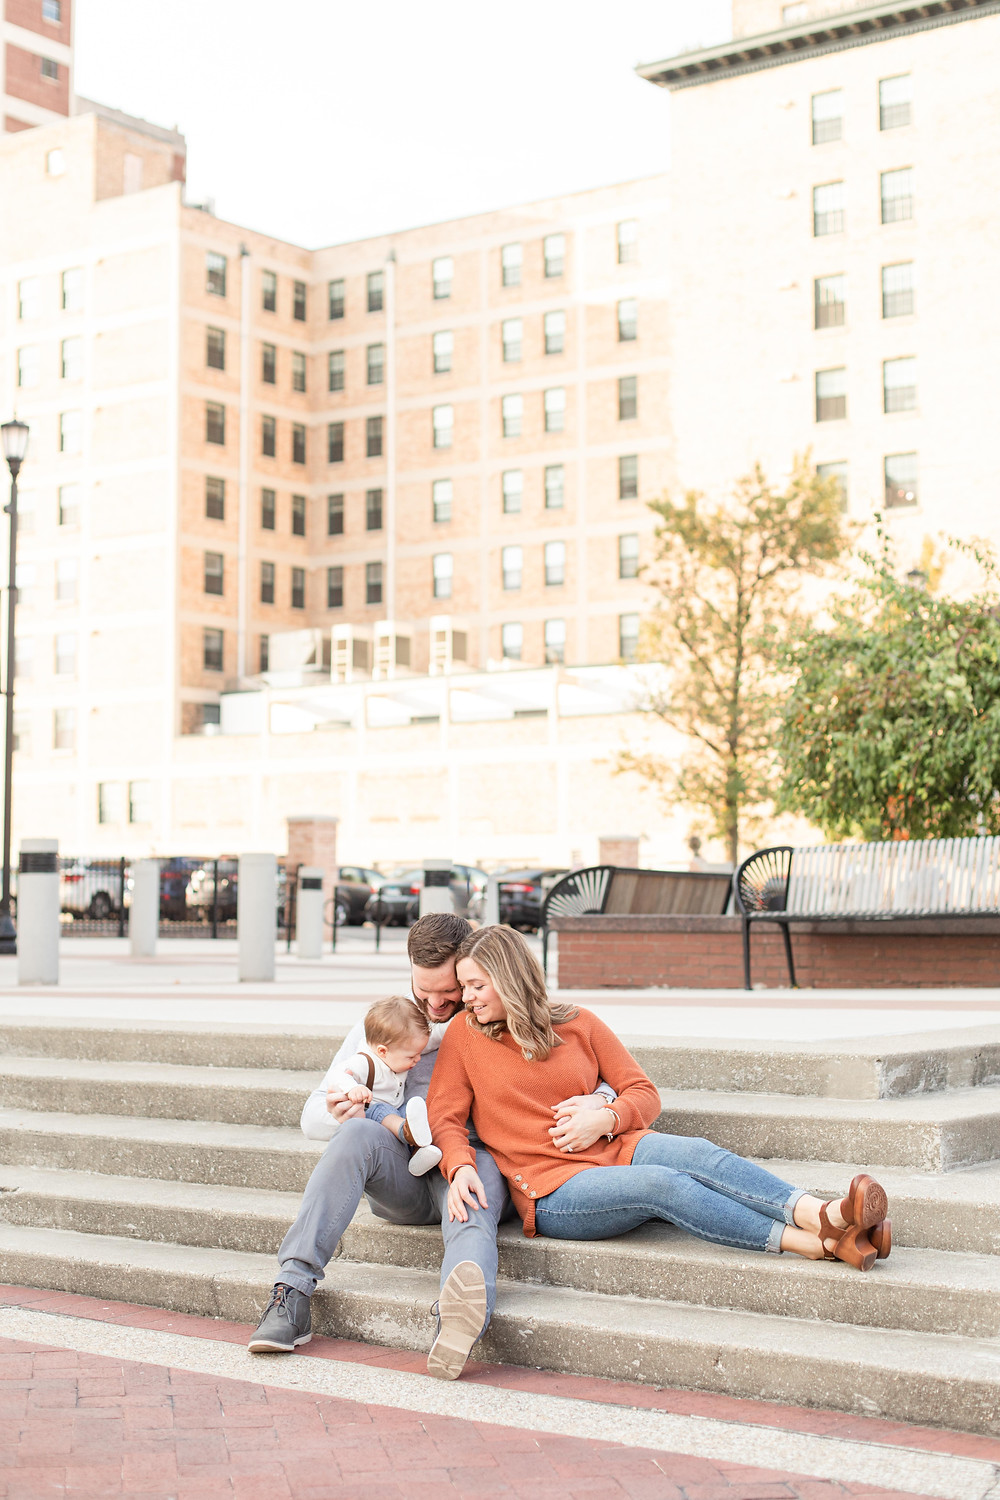 Josh and Andrea photography engagement photos south bend Indiana cute family sitting smiling